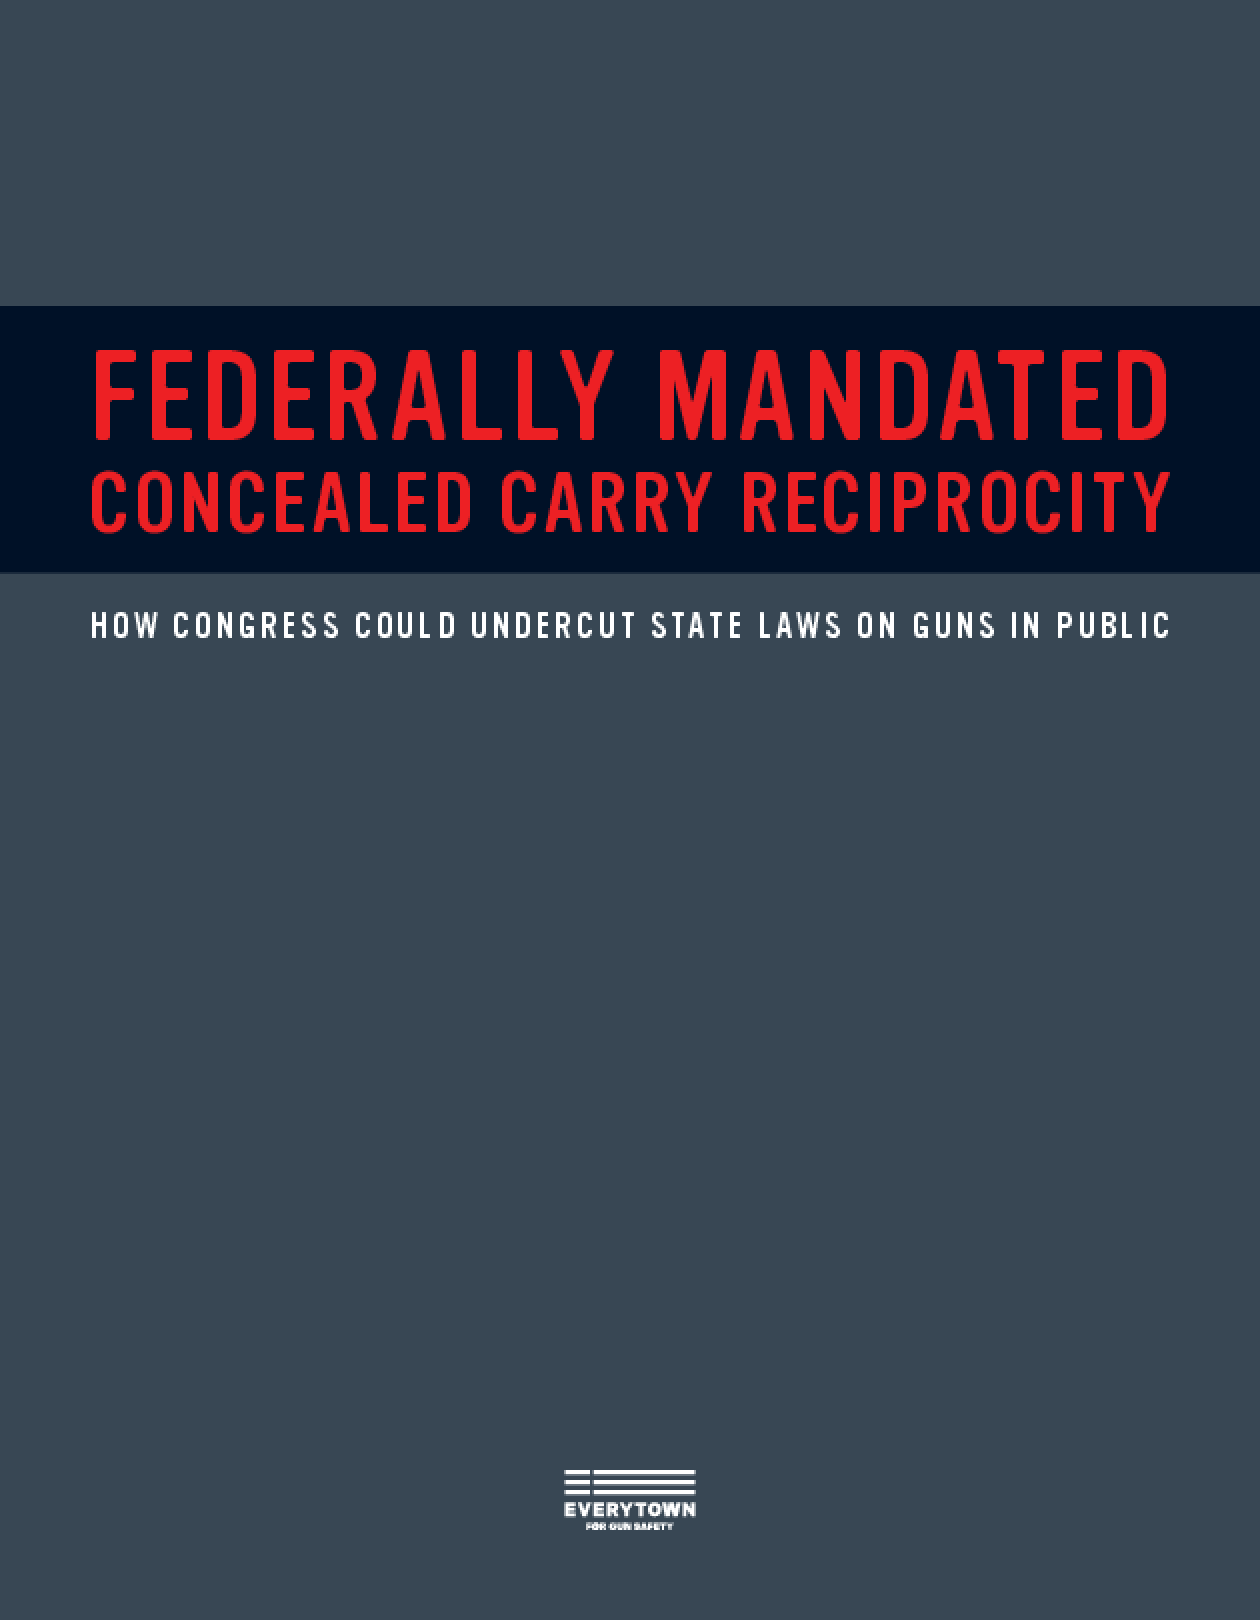 Federally Mandated Concealed Carry Reciprocity: How Congress Could Undercut State Laws On Guns In Public